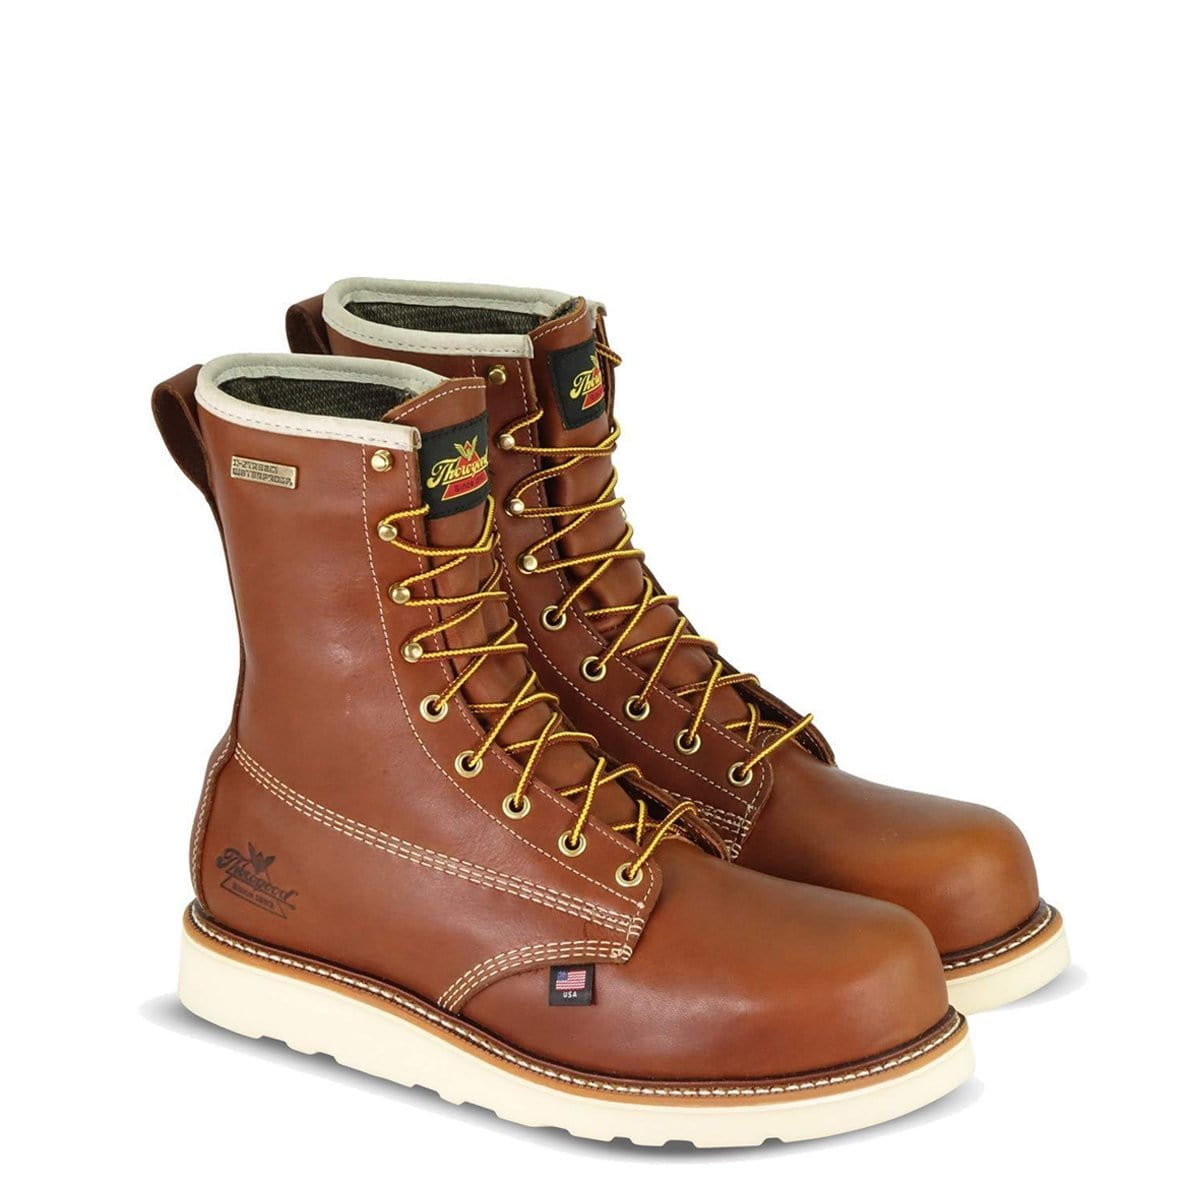 Thorogood American Heritage 8in Round Toe, MAXWear Wedge Waterproof Composite Safety Toe Boots 804-4280